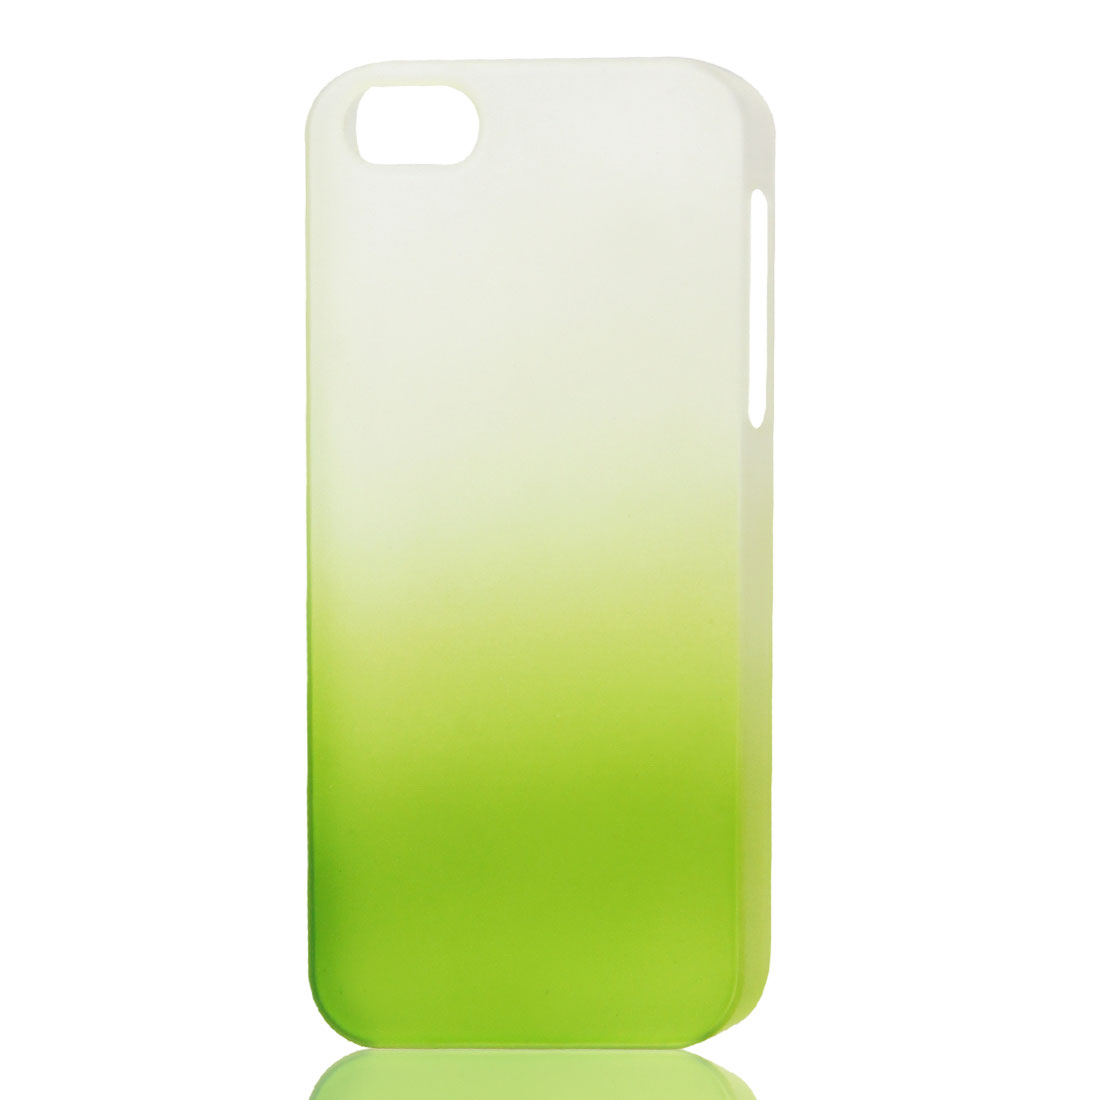 Green White Gradient Hard Back Cover Case for iPhone 5 5G